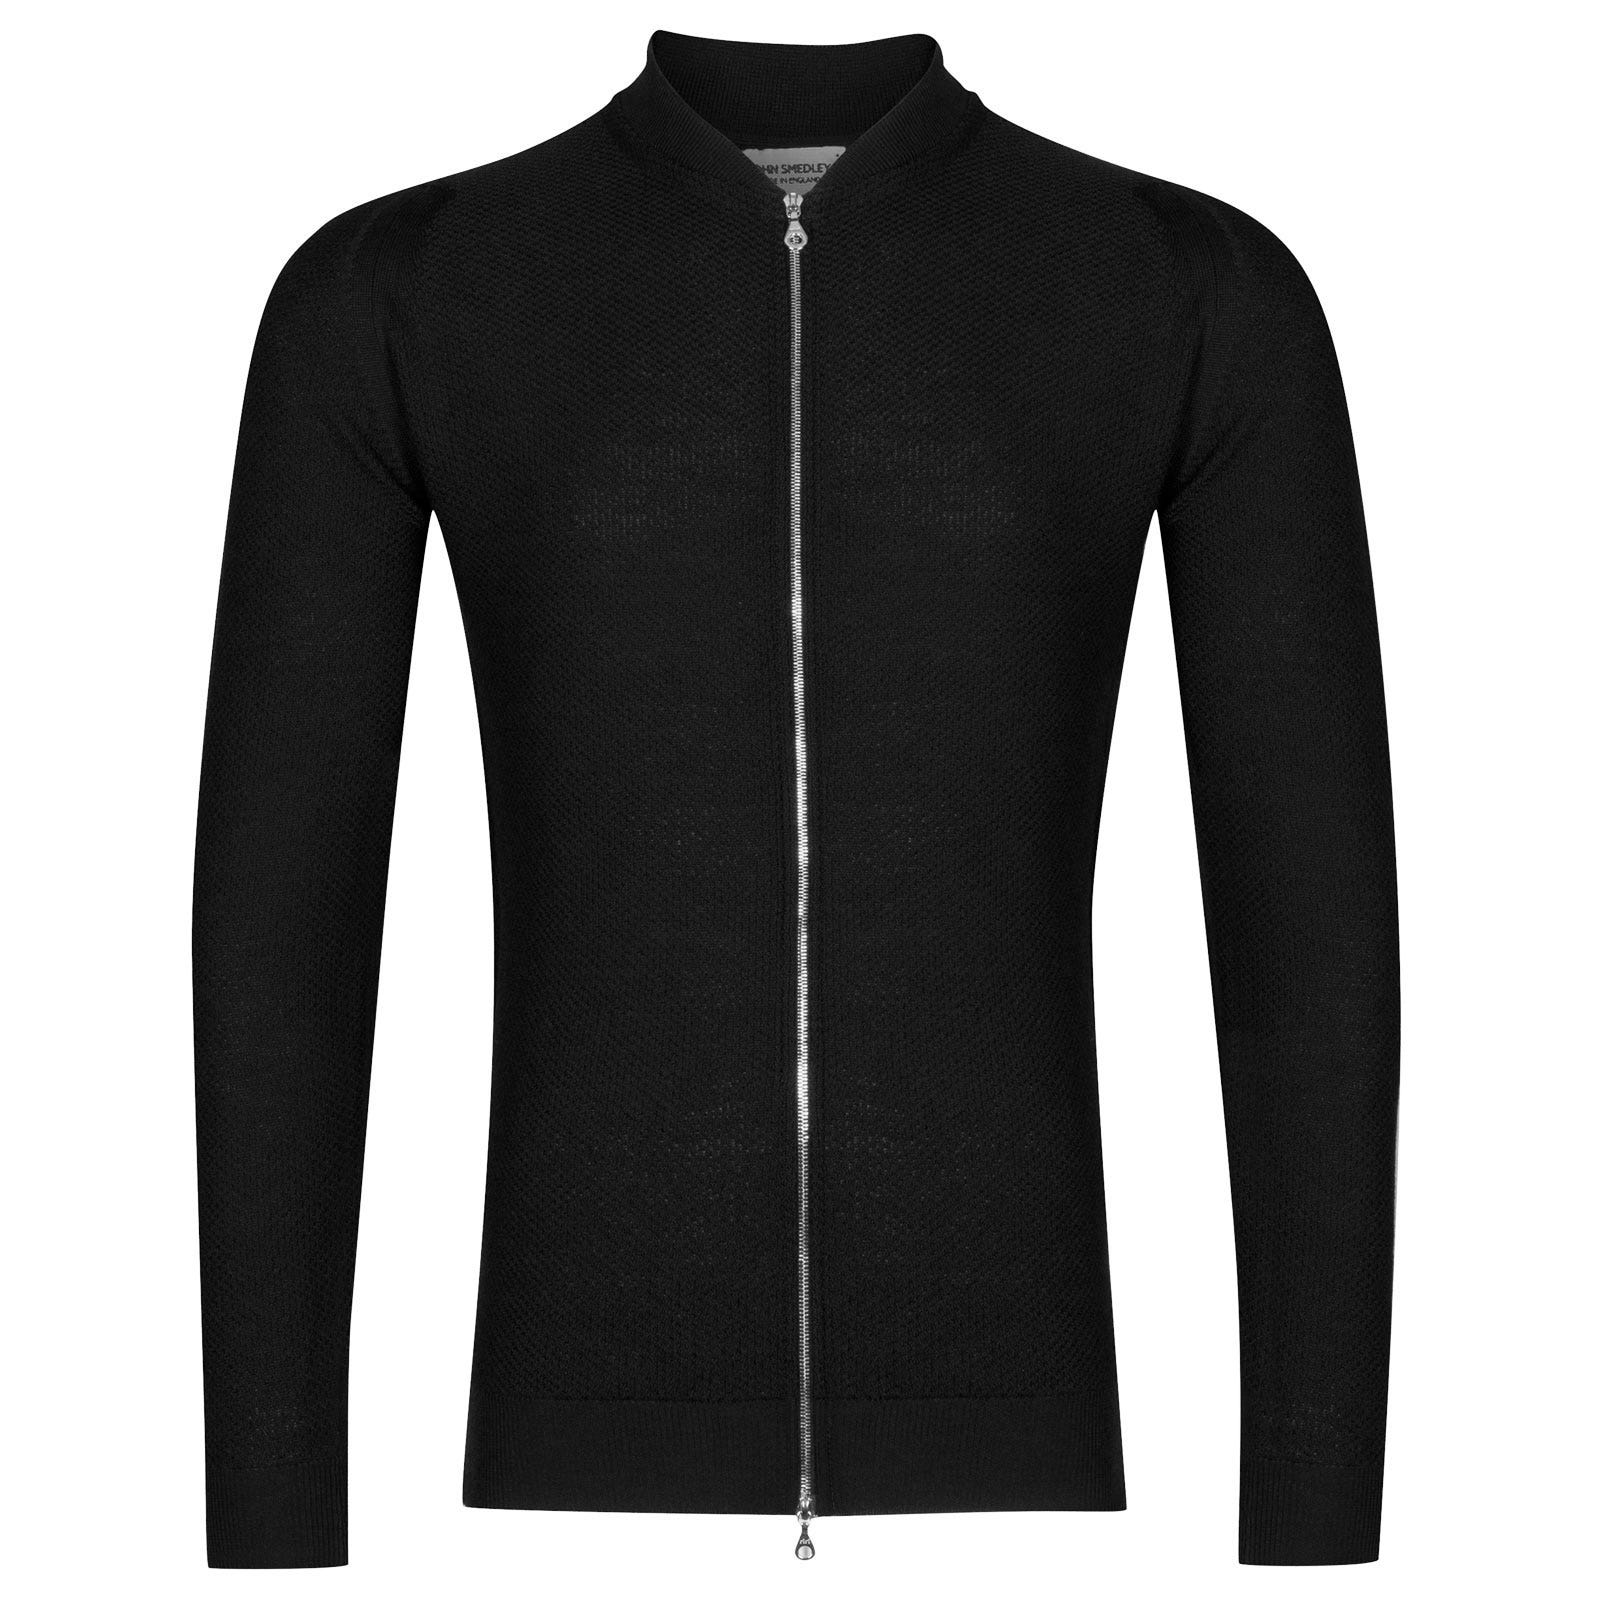 John Smedley 6Singular Merino Wool Jacket in Black-L